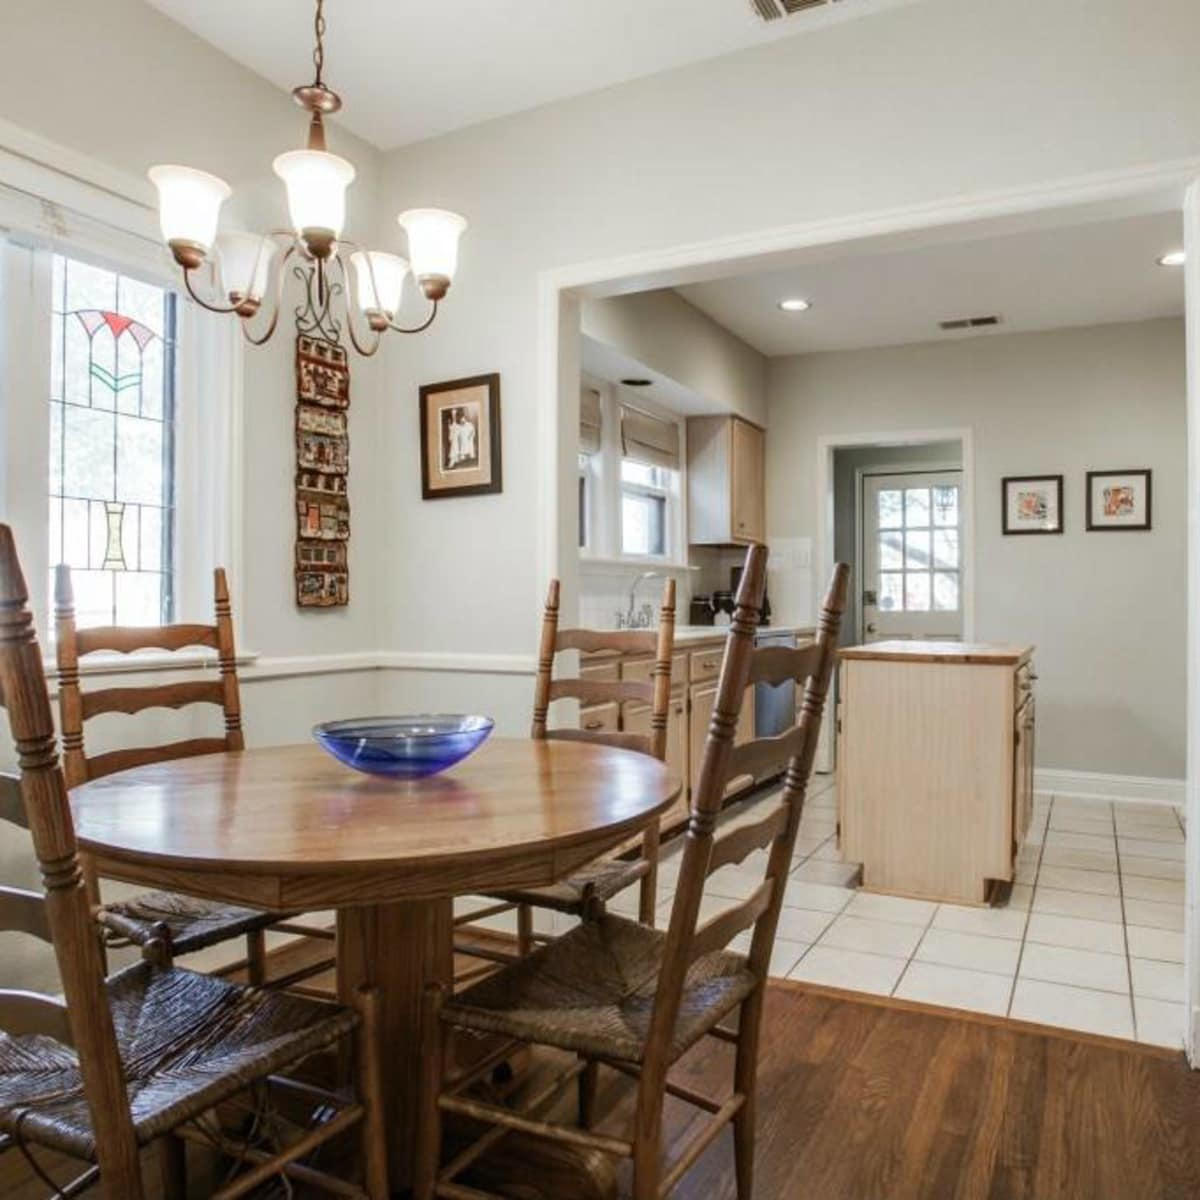 522 Monte Vista breakfast nook